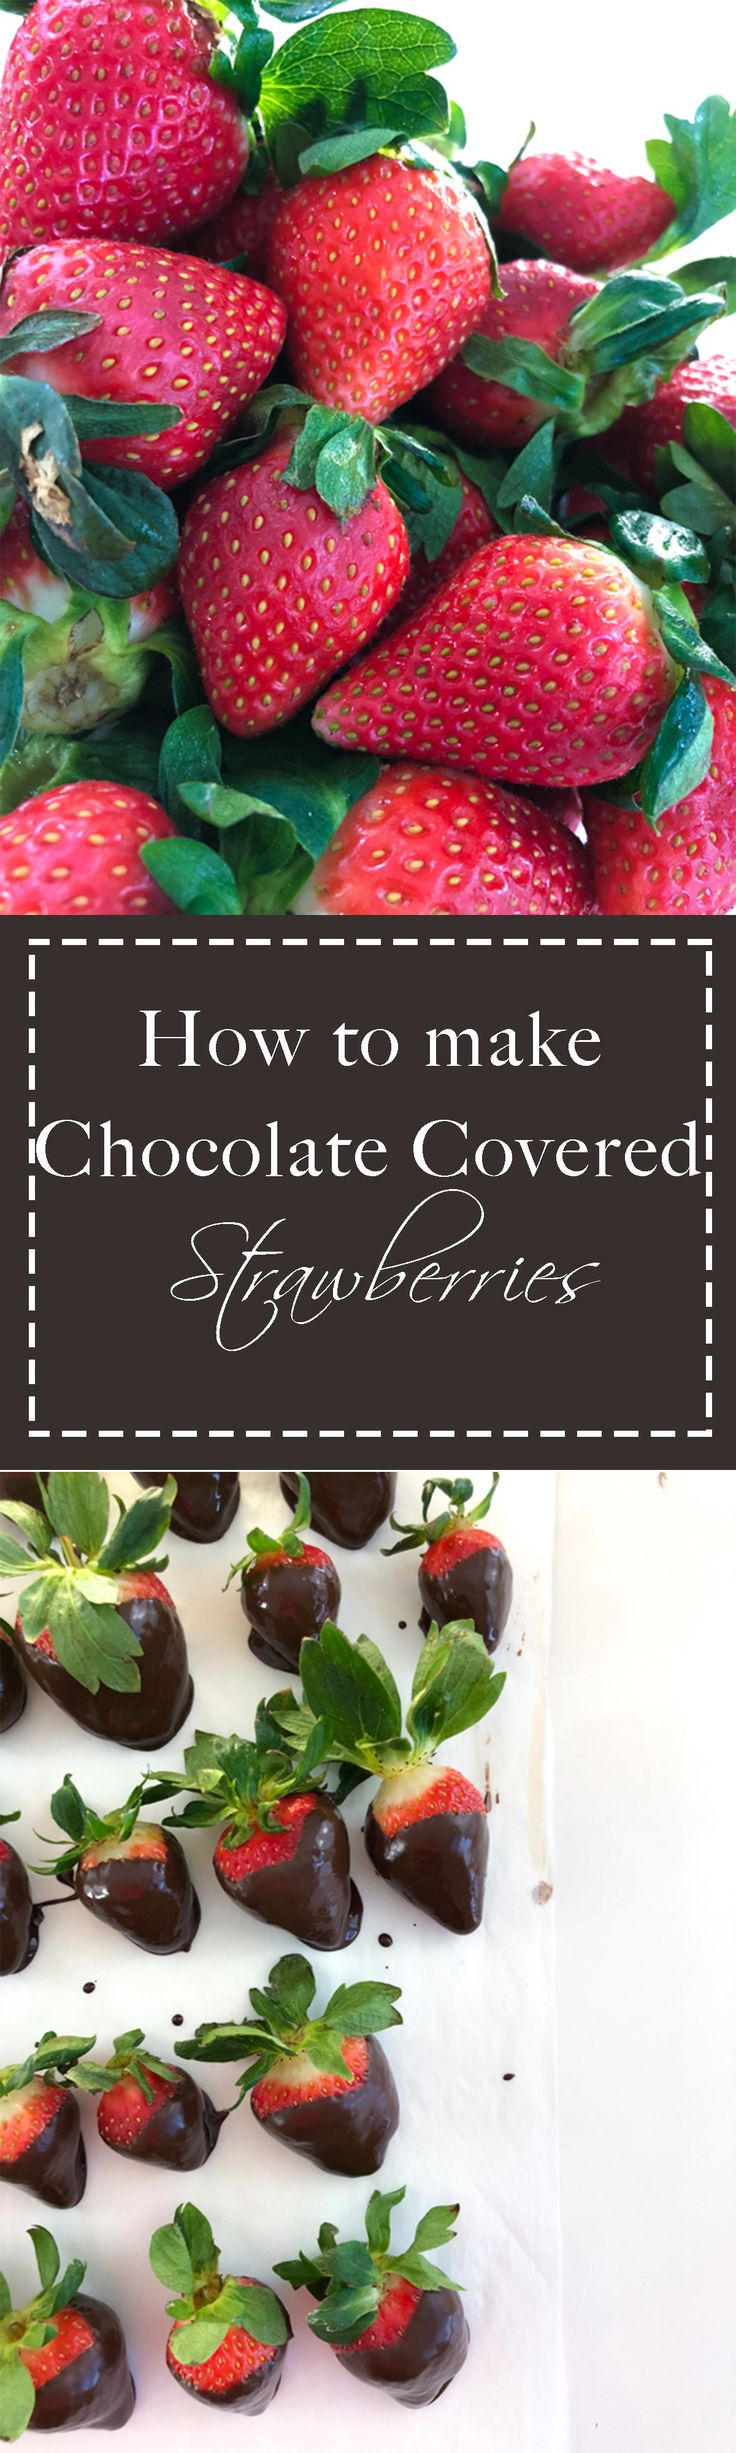 This one ingredient will transform your chocolate covered strawberries into a beautiful and shiny dessert perfect for your loved one on Valentines Day.